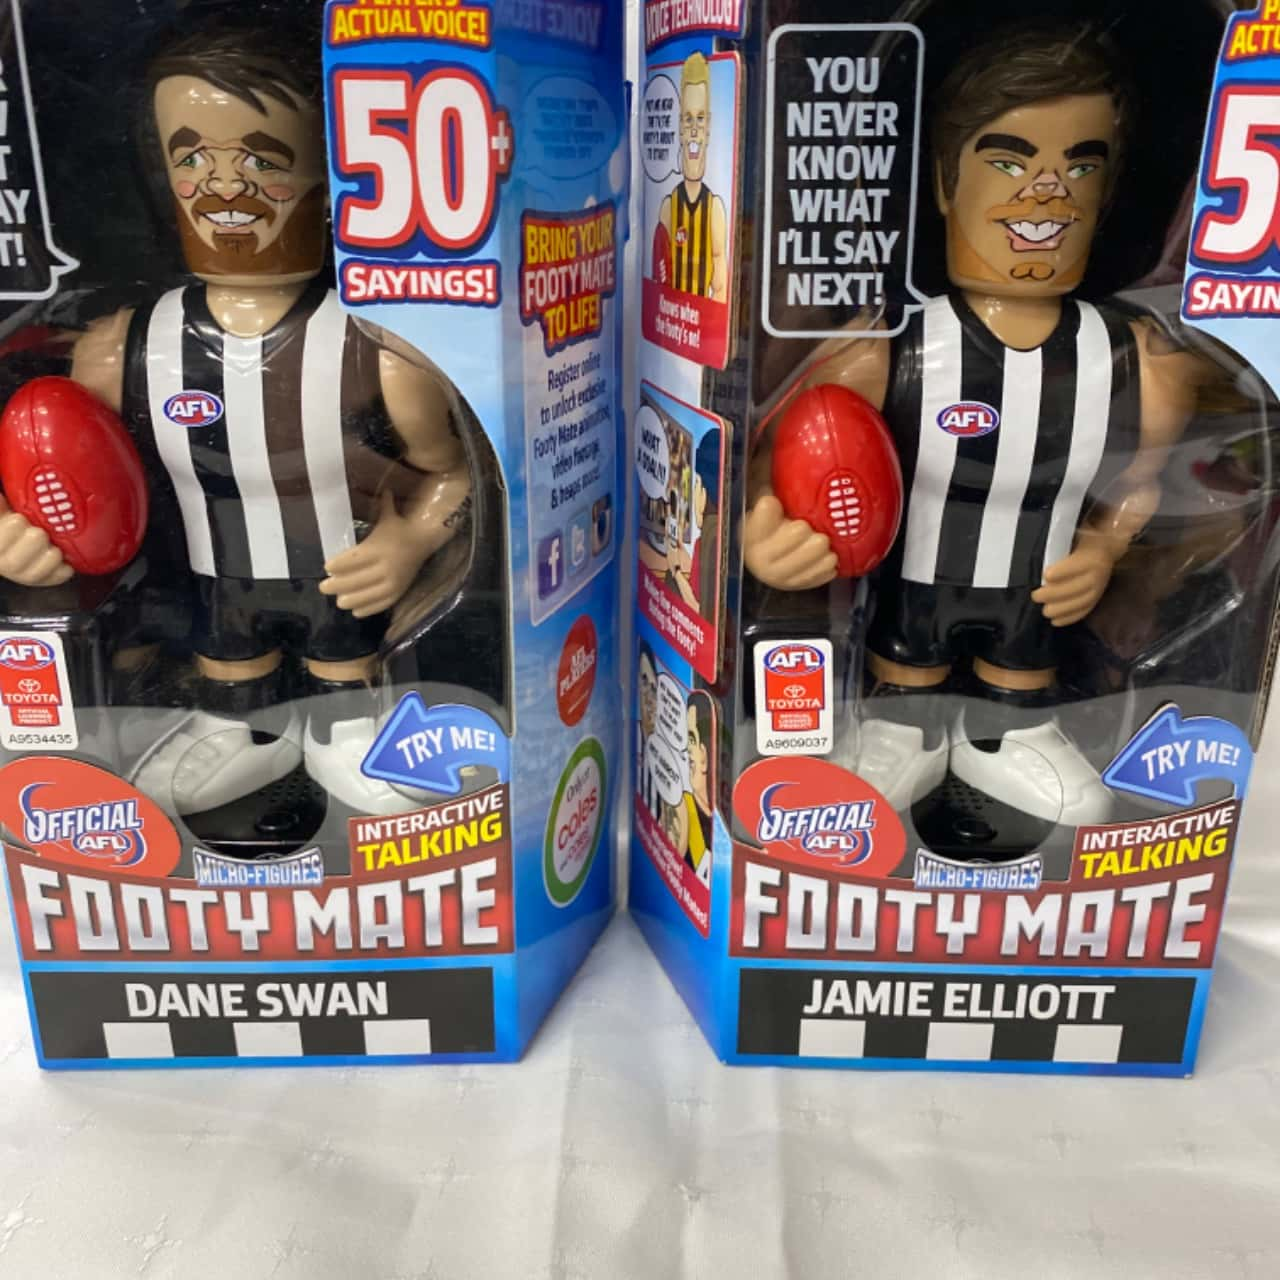 Footy mate limited edition